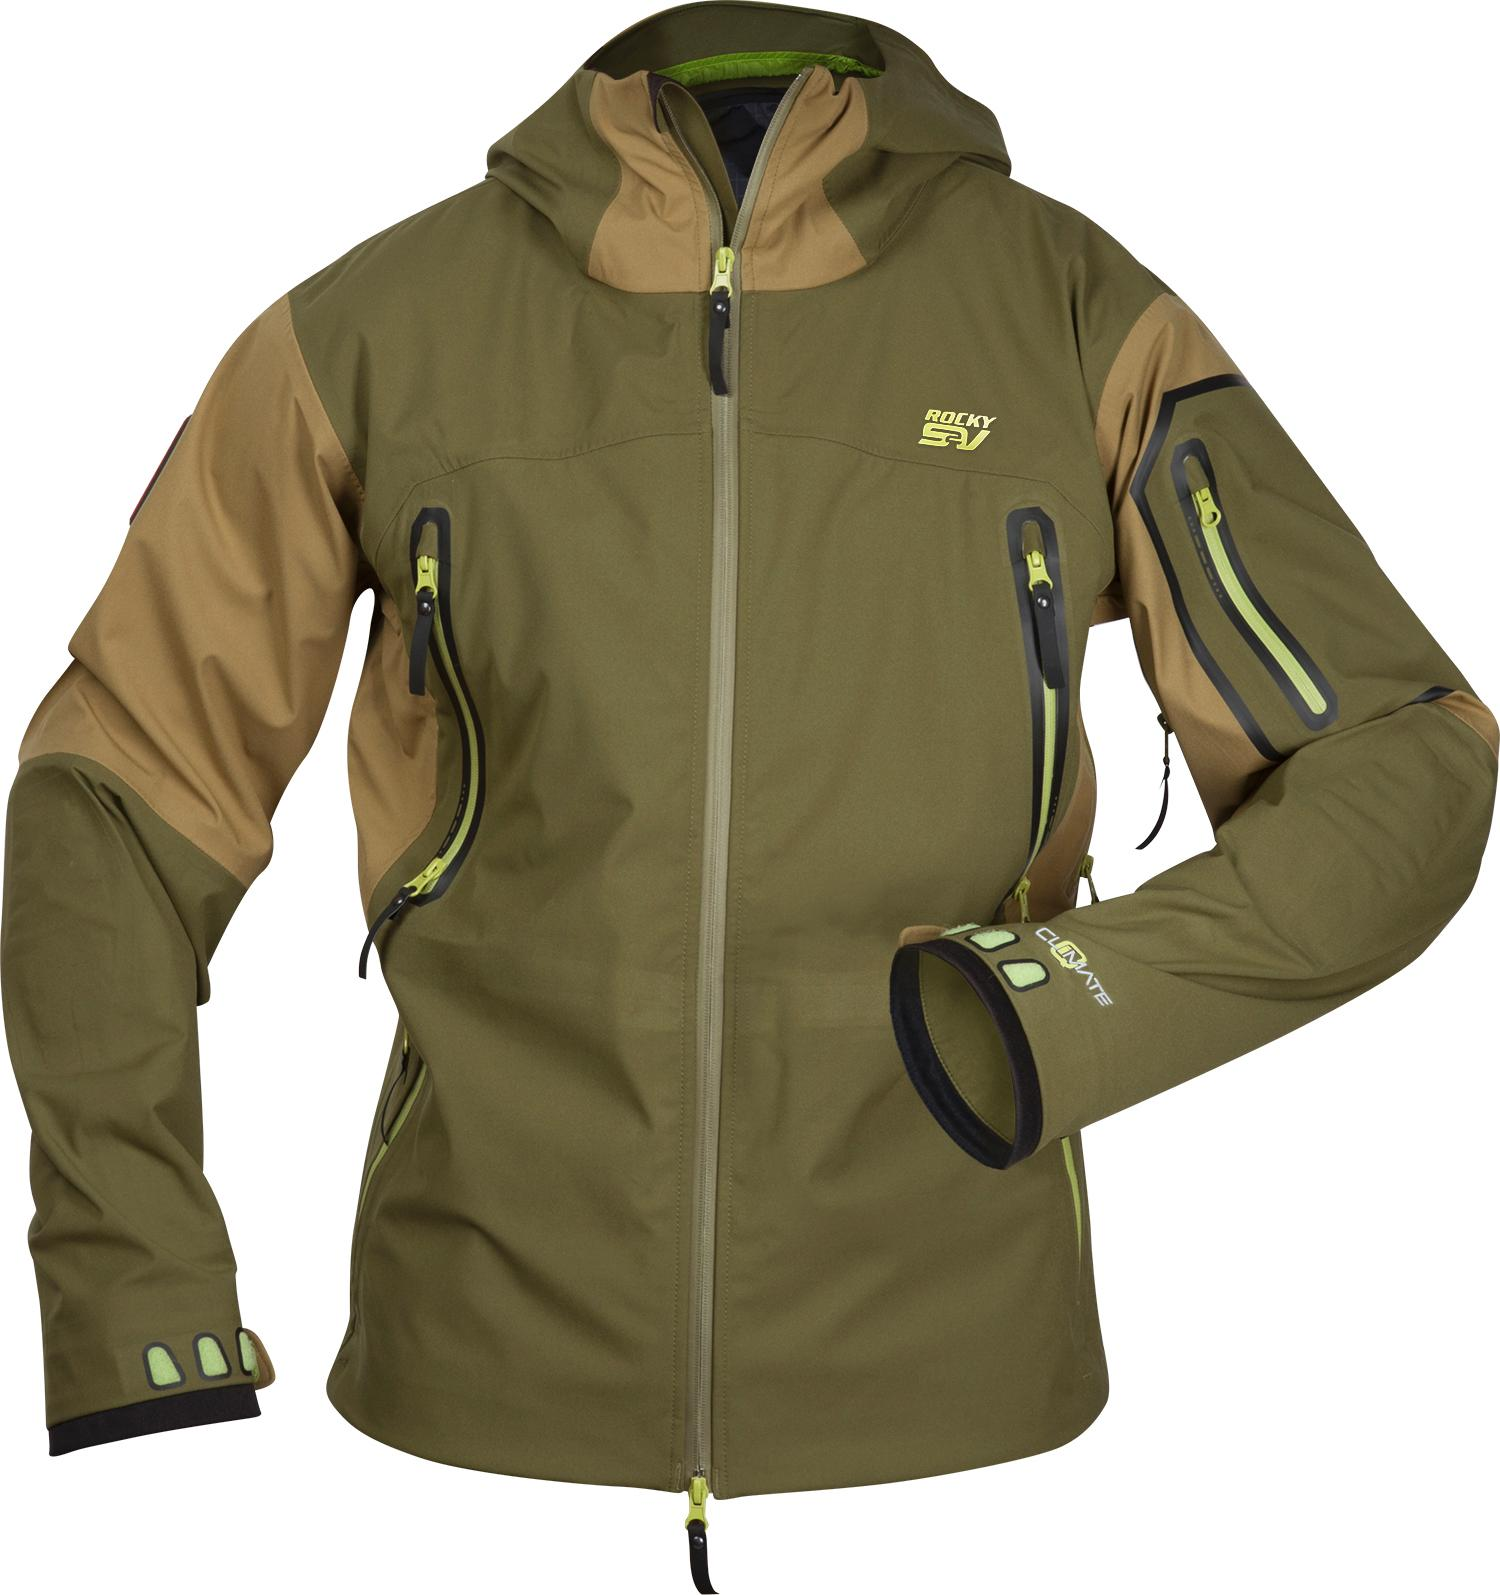 rocky s2v provision waterproof insulated survival jacket